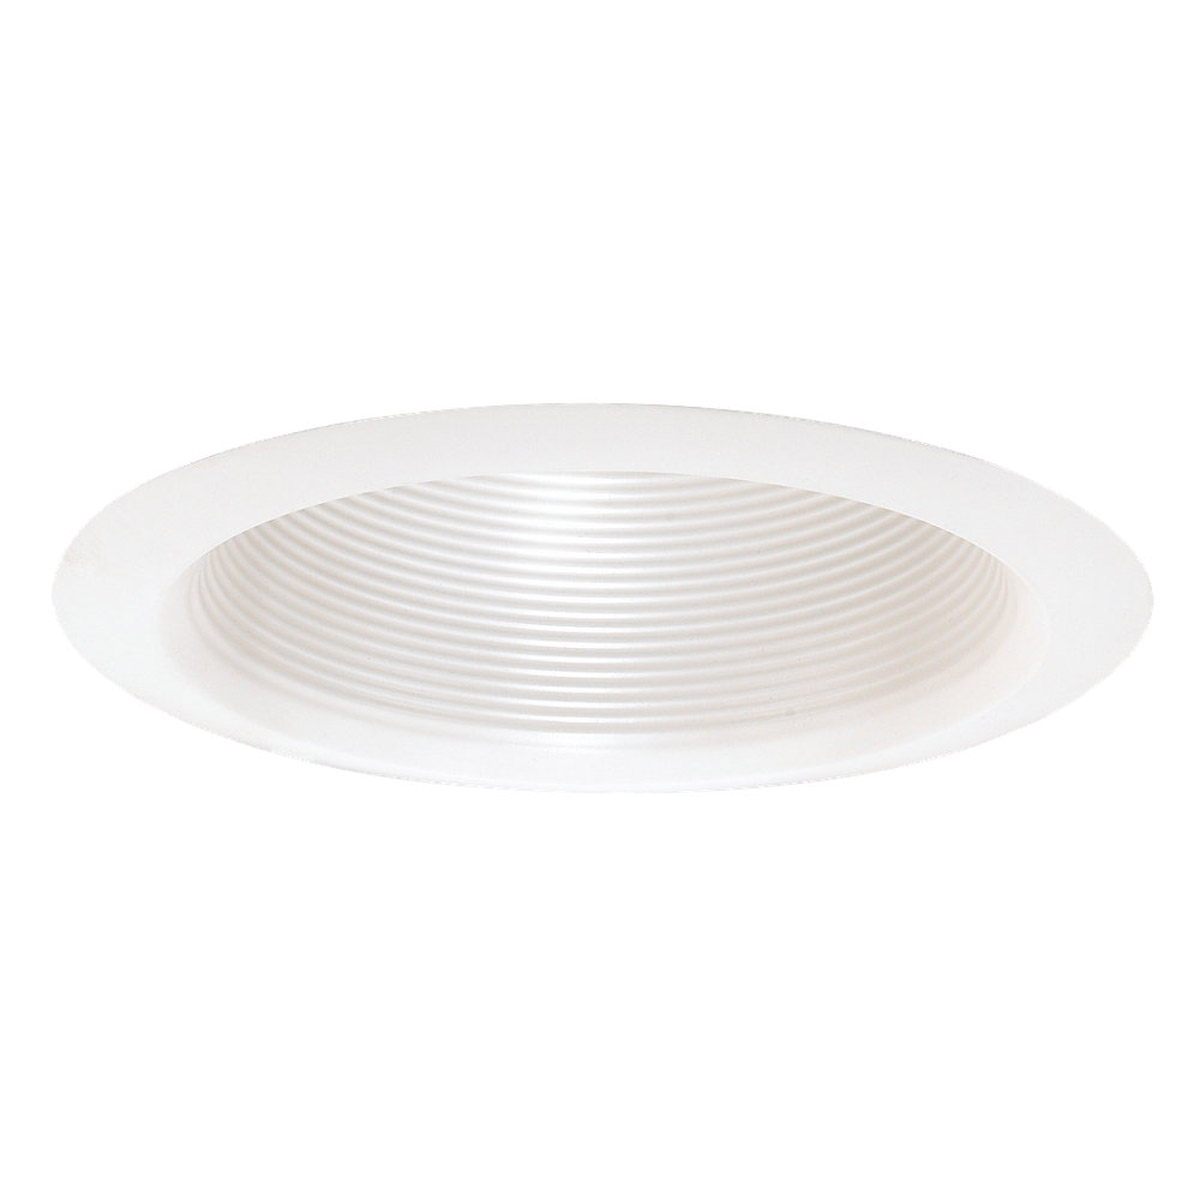 Sea Gull Lighting Signature Recessed Trim Only in White 1158AT-14